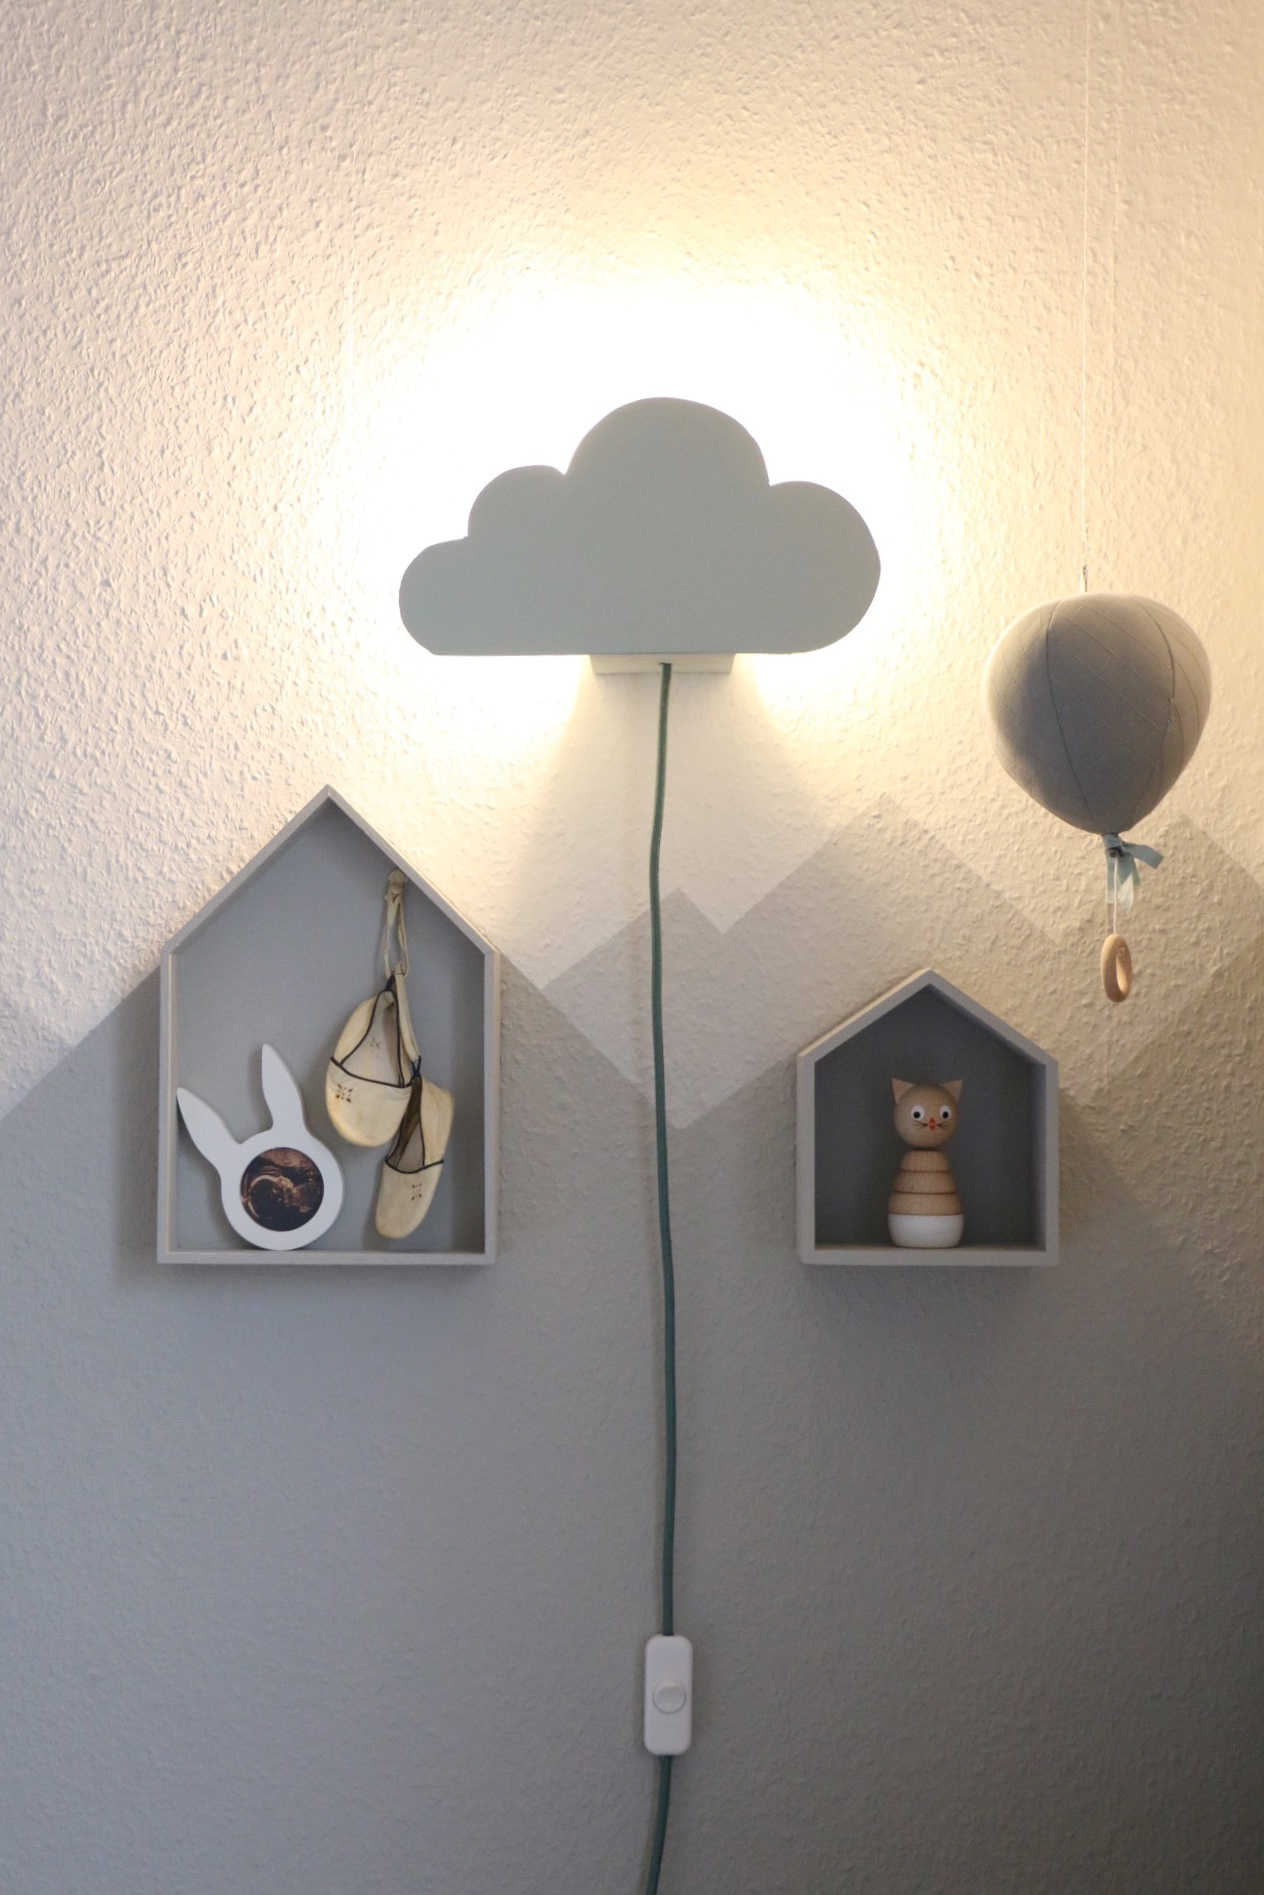 diy cloud lamp wolkenleuchte f r die wickelecke eat blog love. Black Bedroom Furniture Sets. Home Design Ideas